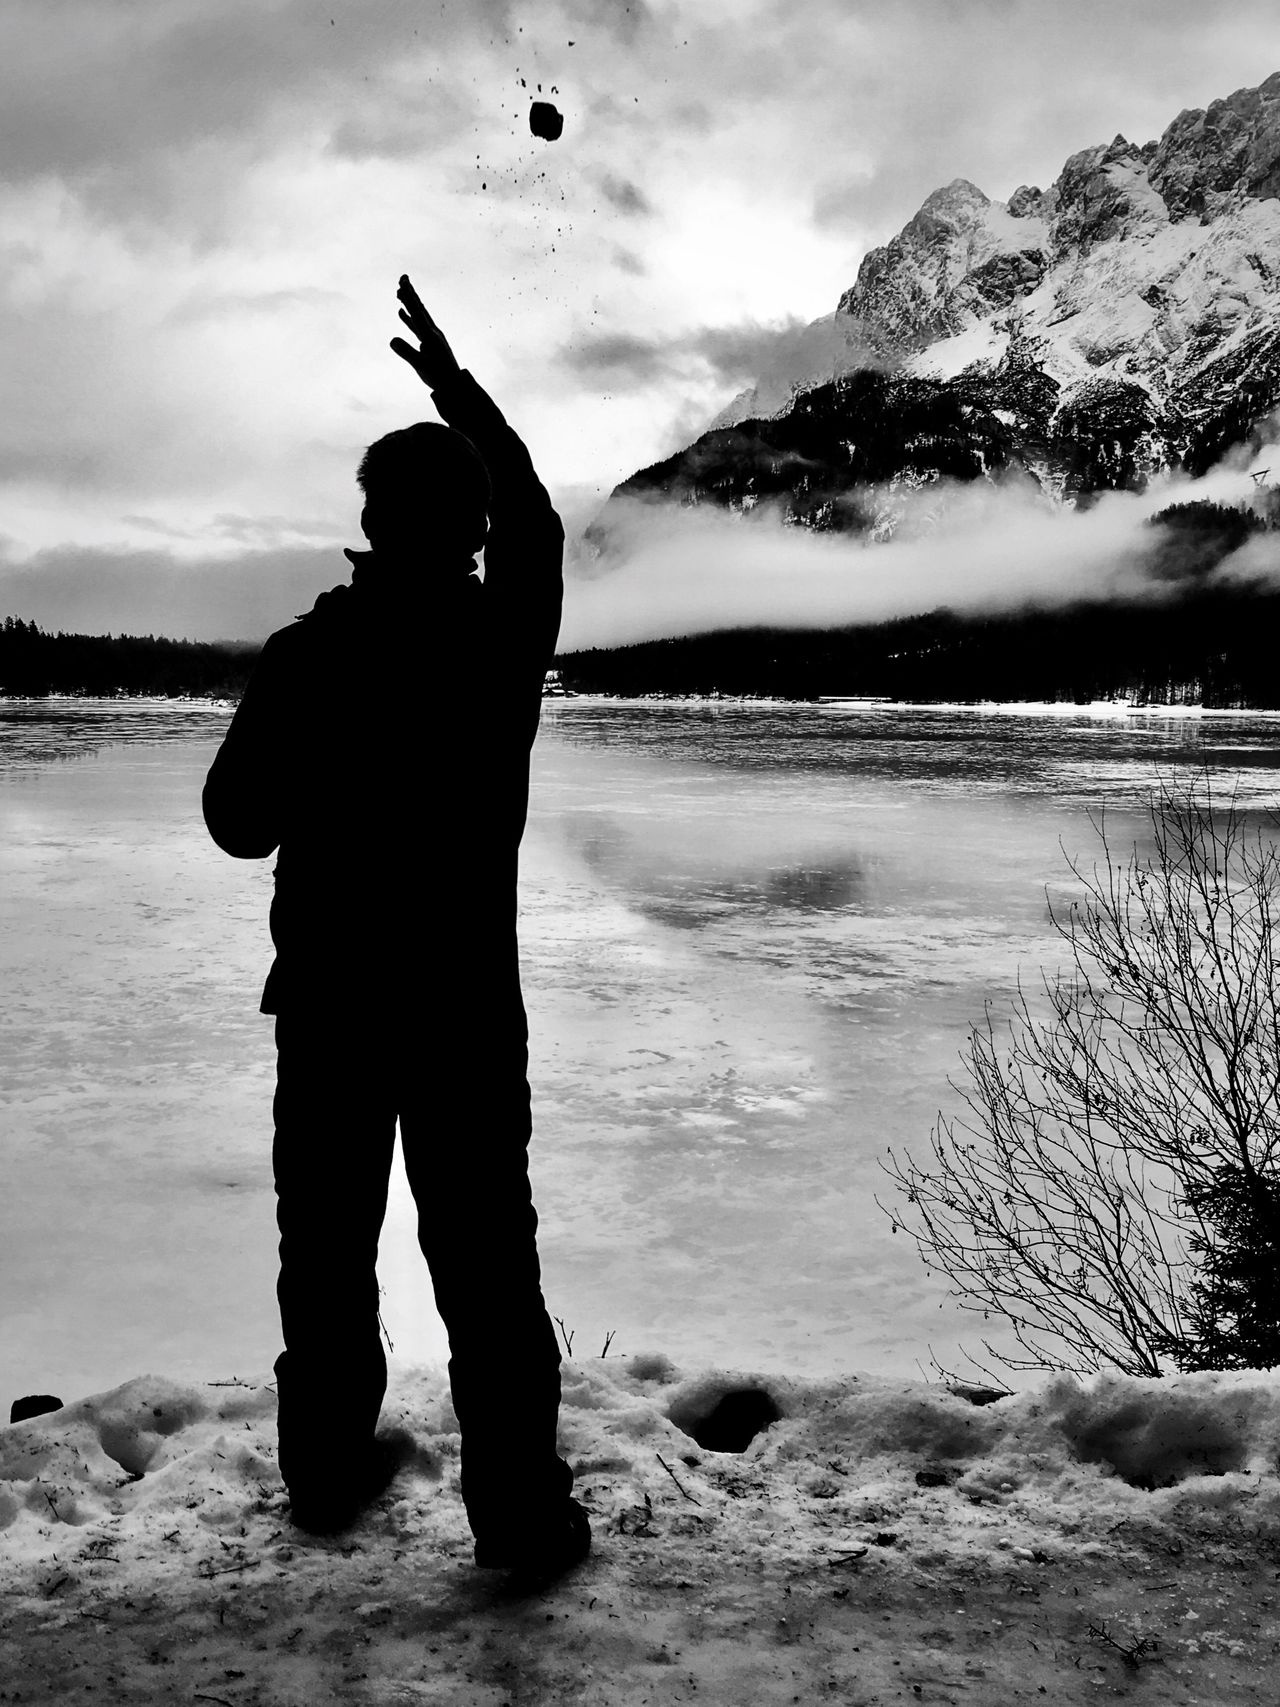 Winter wonderland... Real People Nature Water Sky Standing Mountain Beauty In Nature Men Outdoors One Person Silhouette Scenics Beach Full Length Day Ice Cold Temperature Snow ❄ Minimalism White IPhoneography Wintertime Winter Wonderland Blackandwhite Photography Blackandwhitephotography